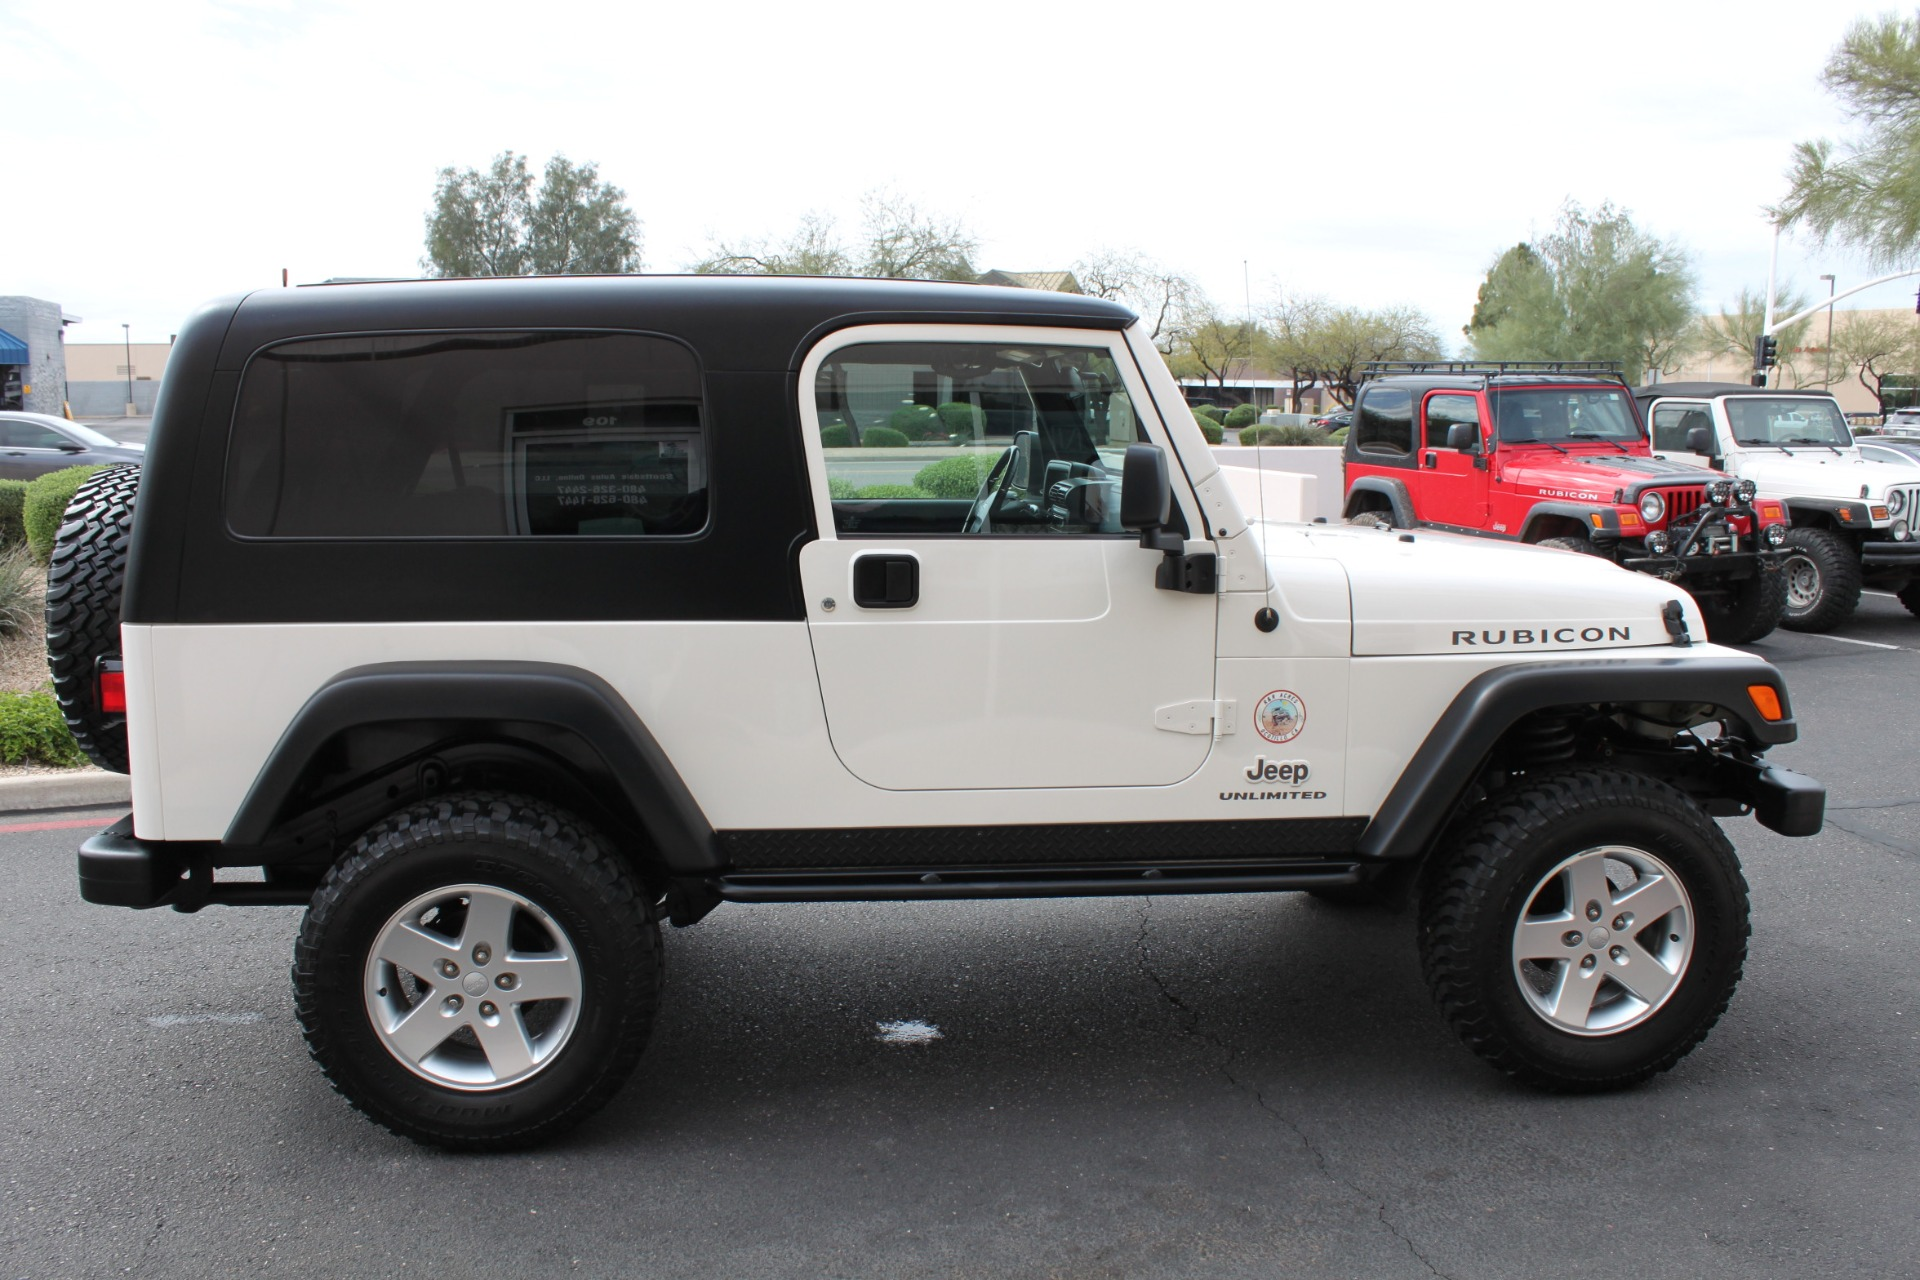 Used-2006-Jeep-Wrangler-Unlimited-Rubicon-LWB-Chrysler